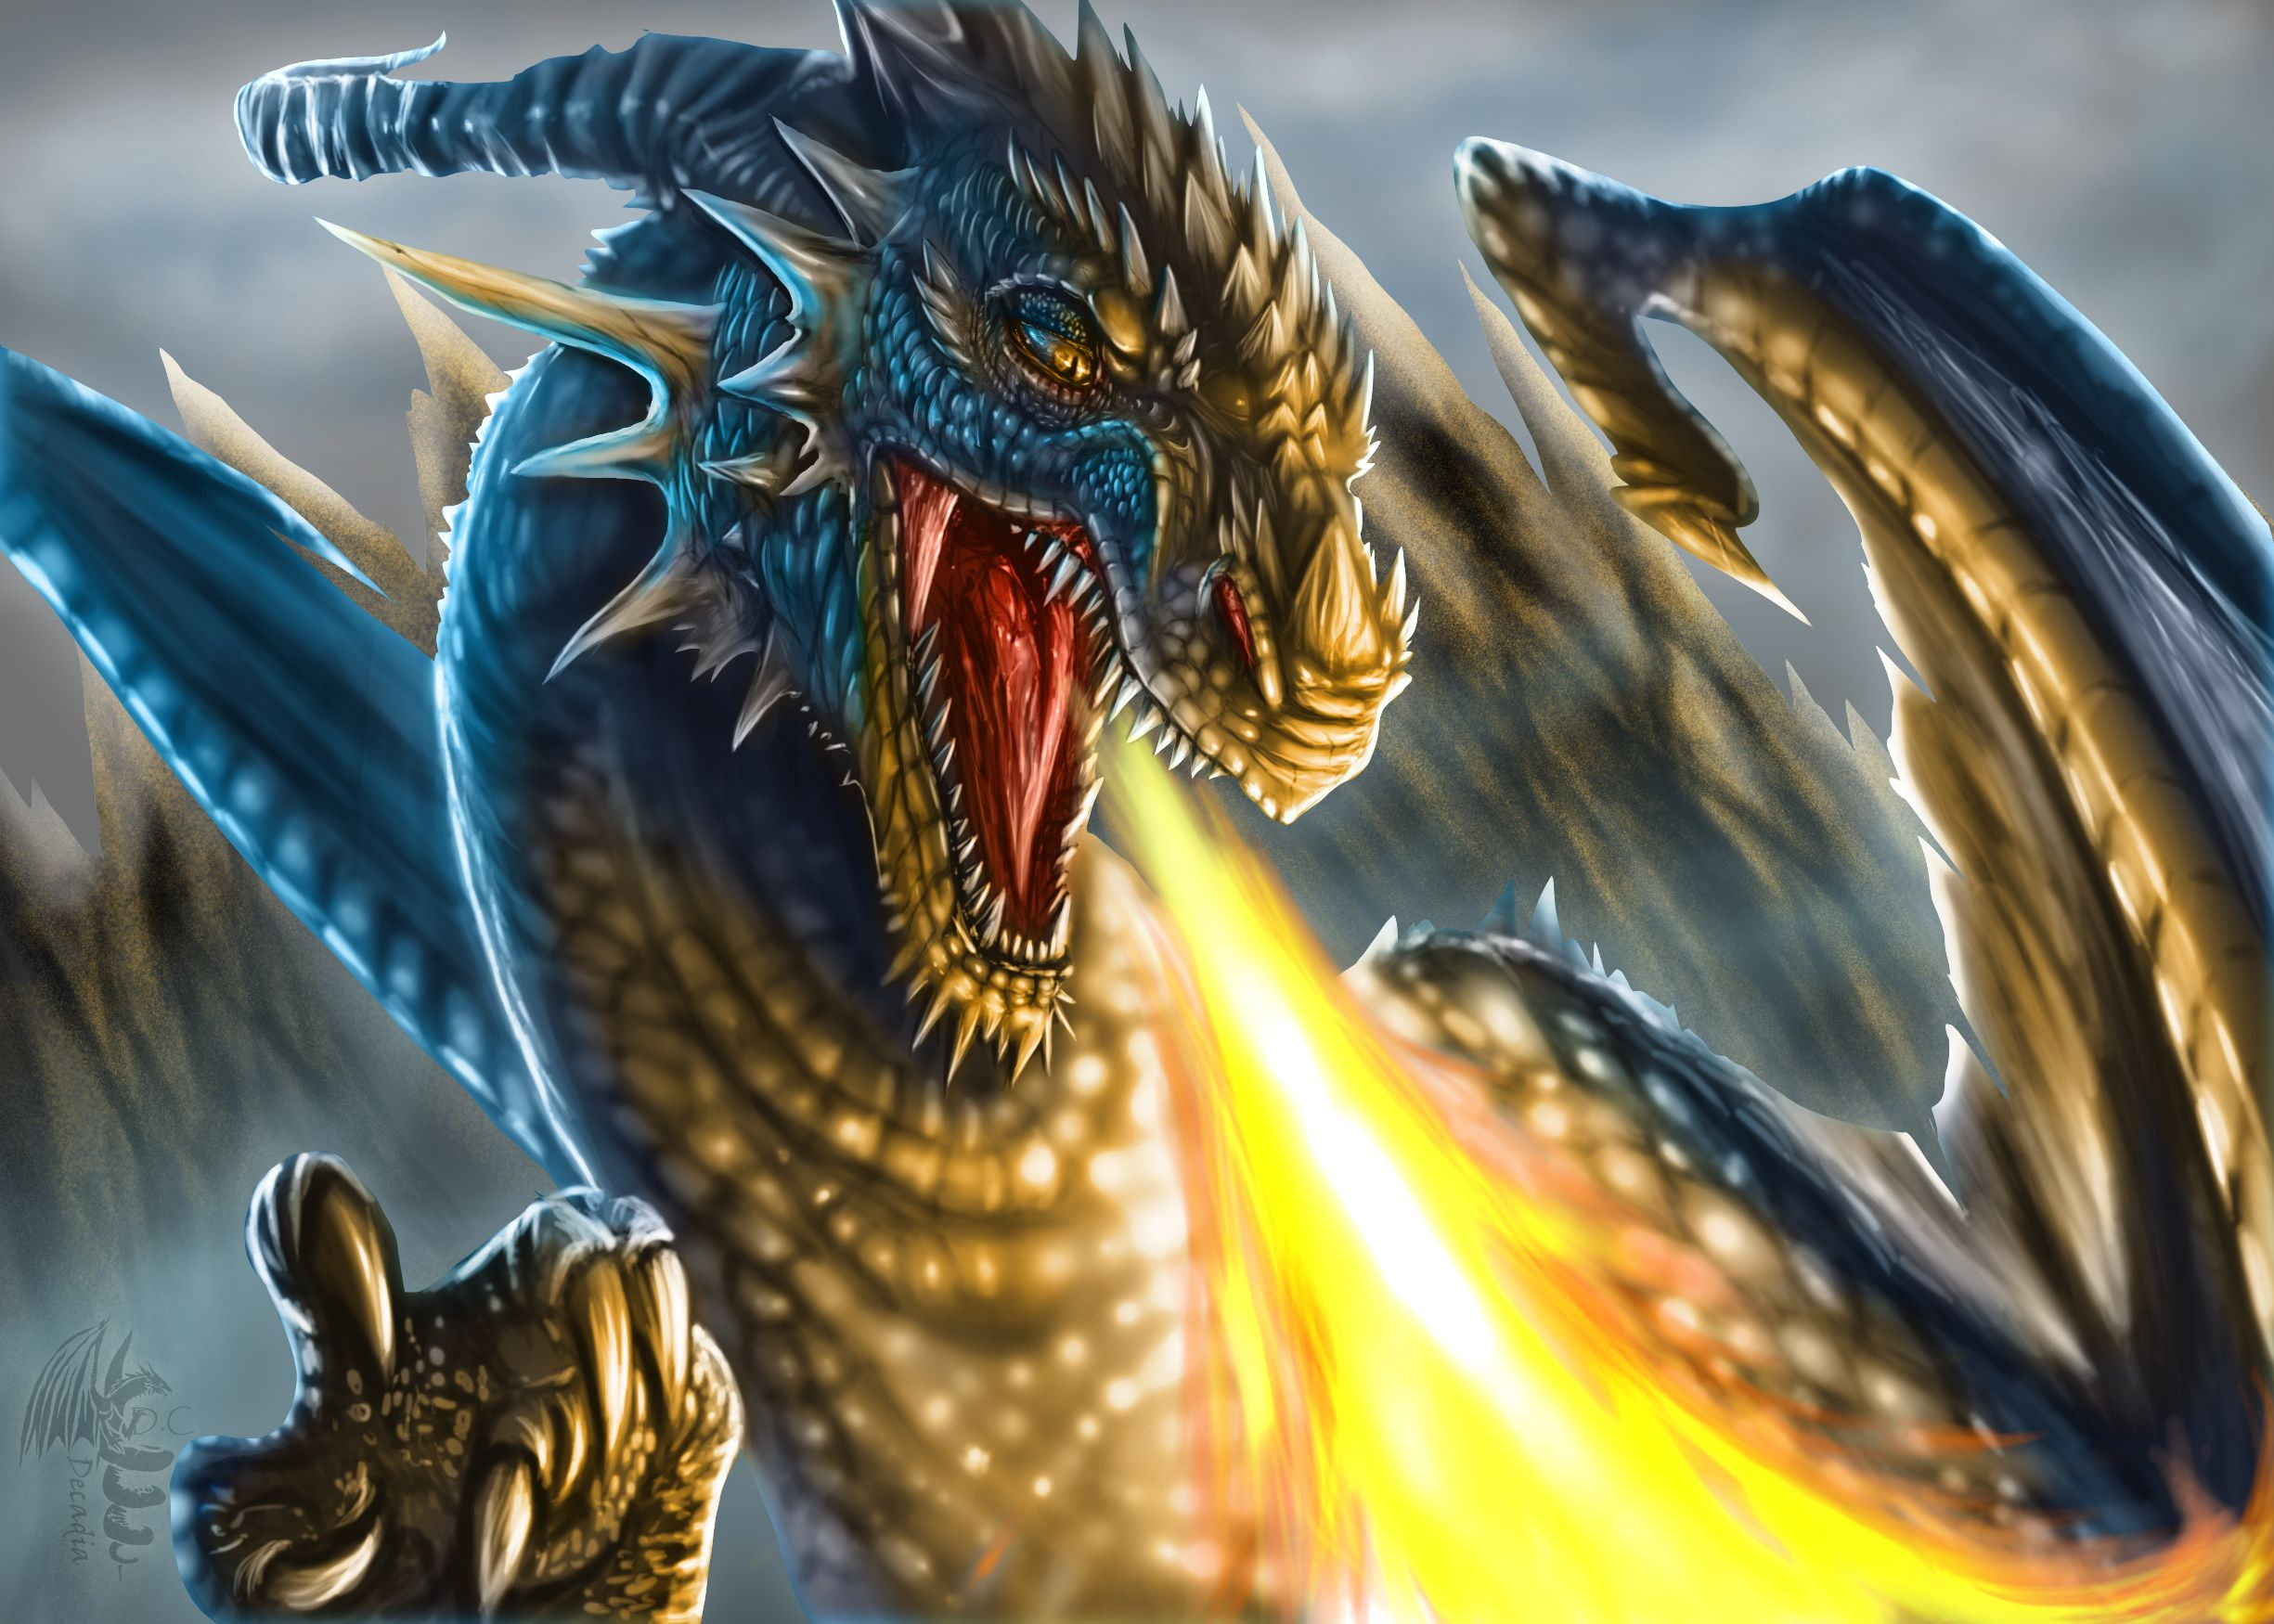 angry fire breath dragon wallpaper :: download to mobile phone